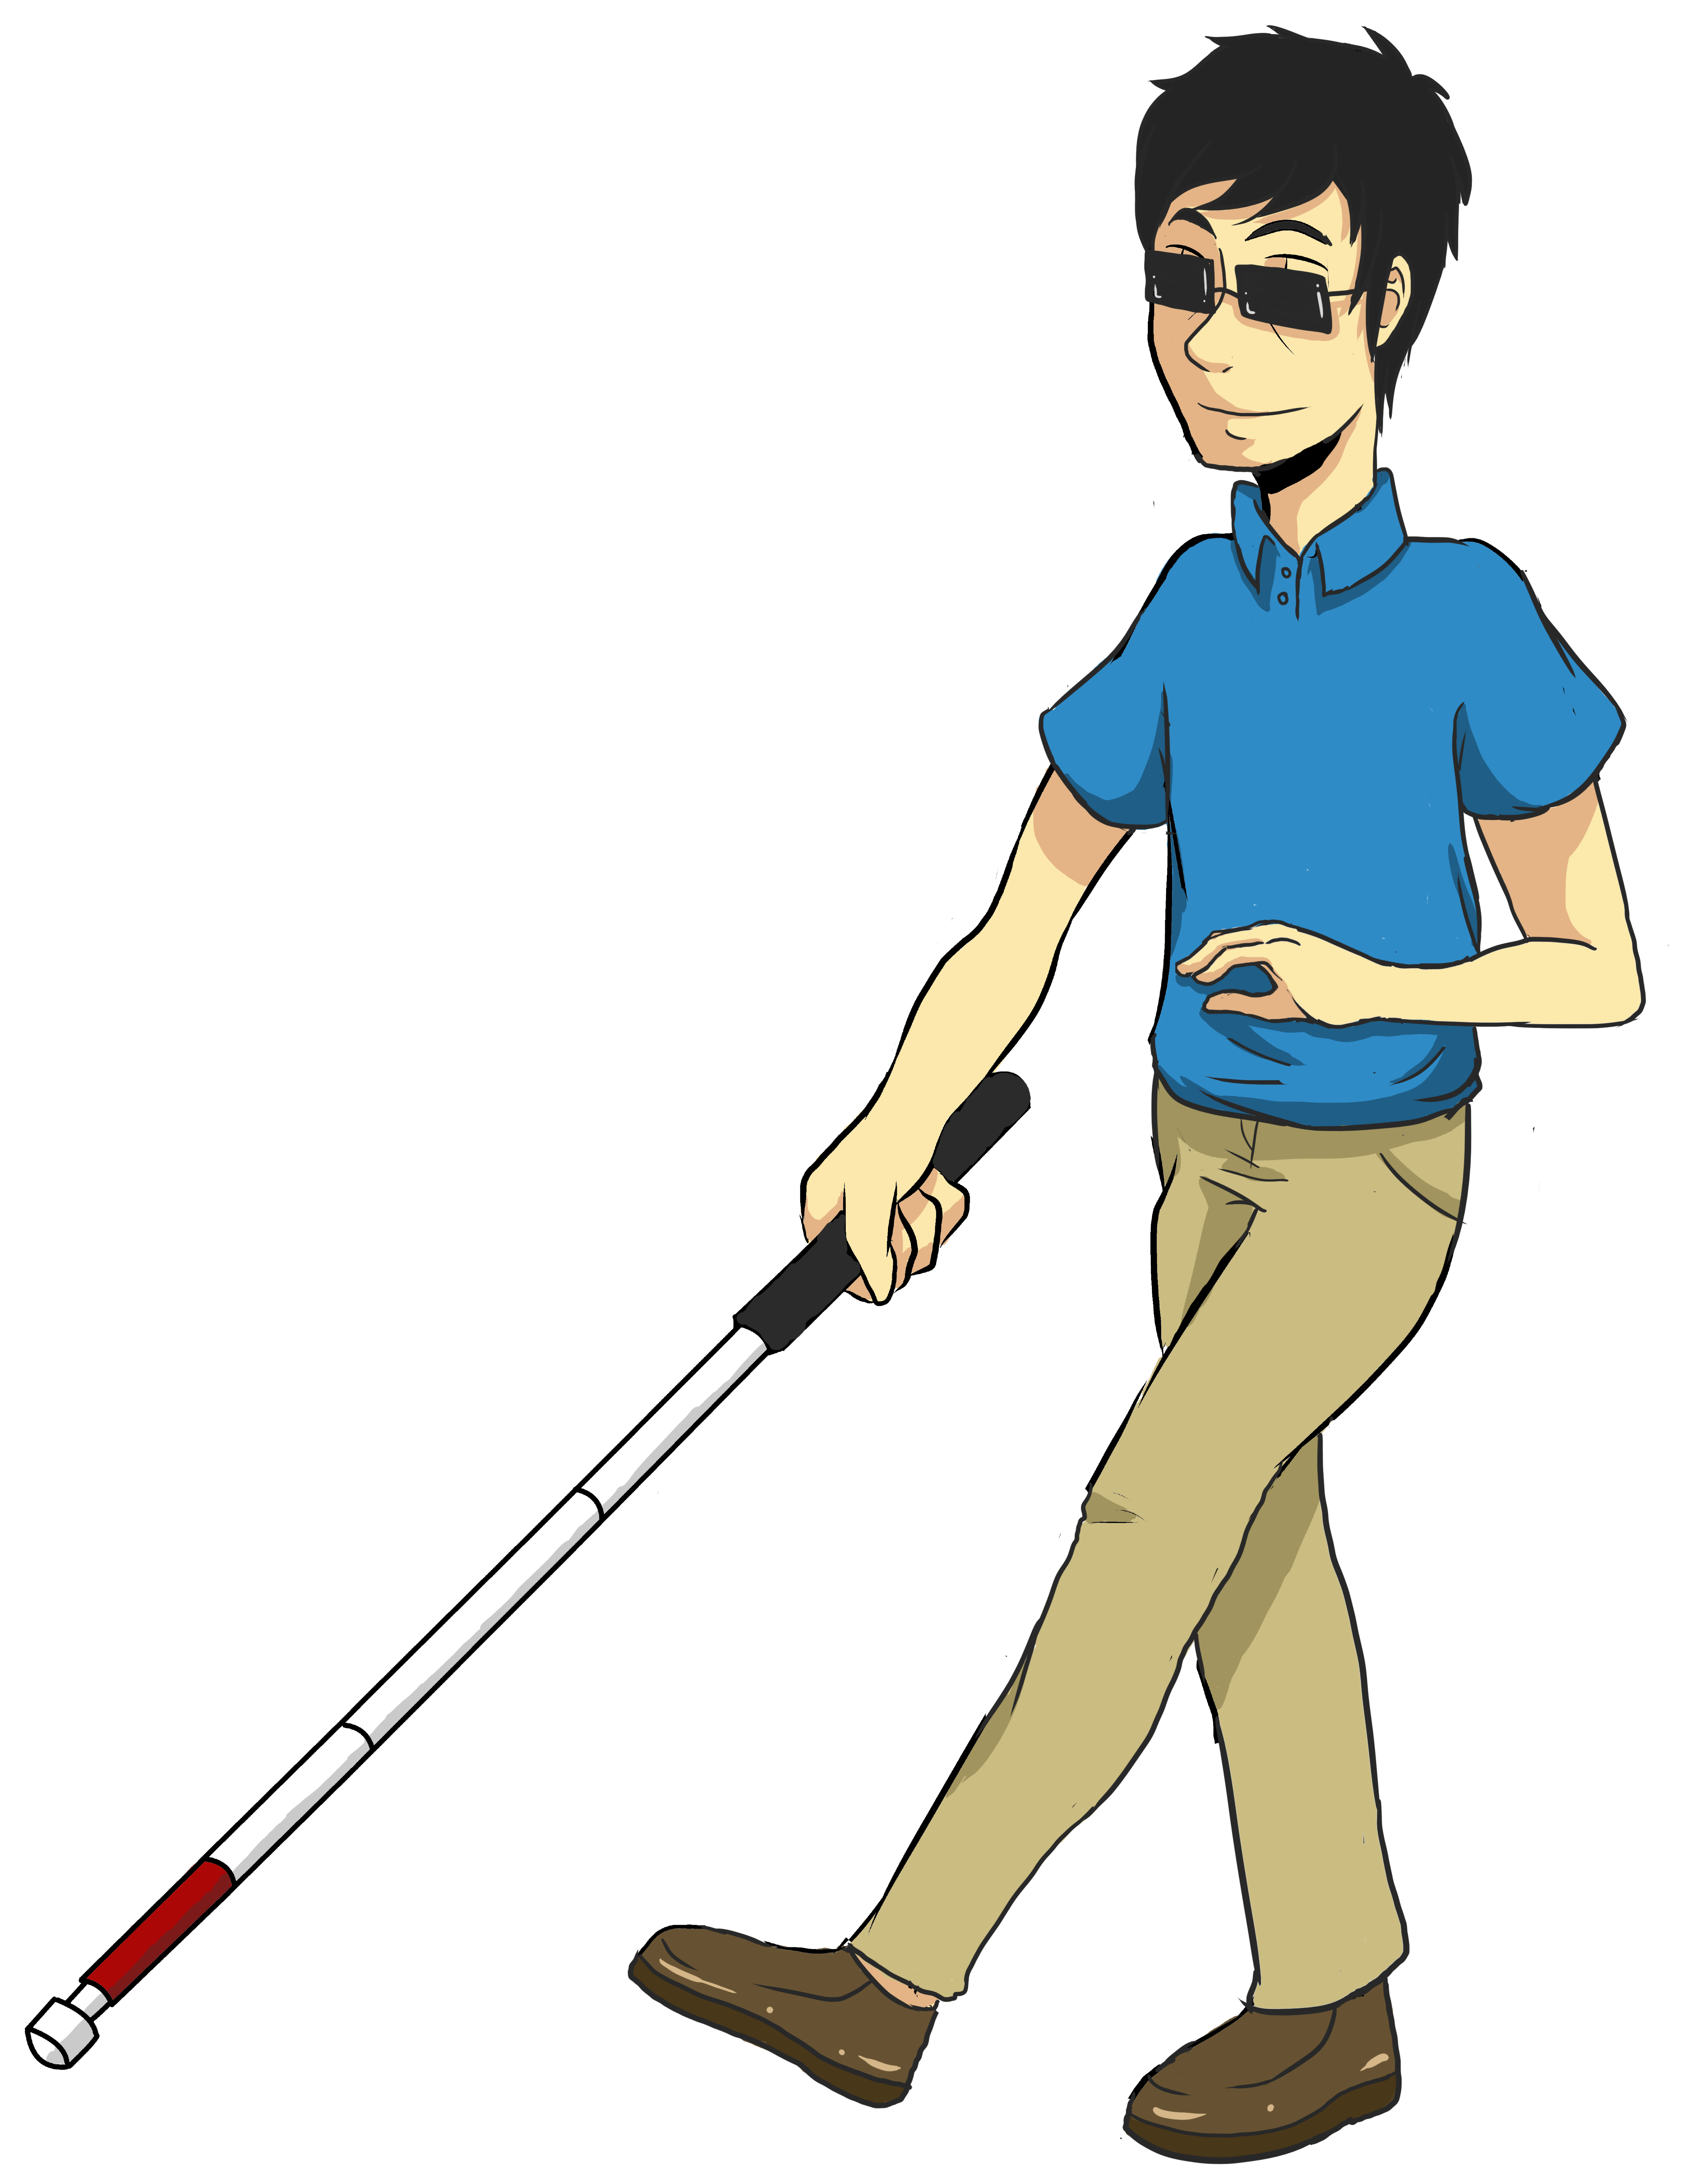 Man walking a dog clipart vector free Blind Man Clipart vector free